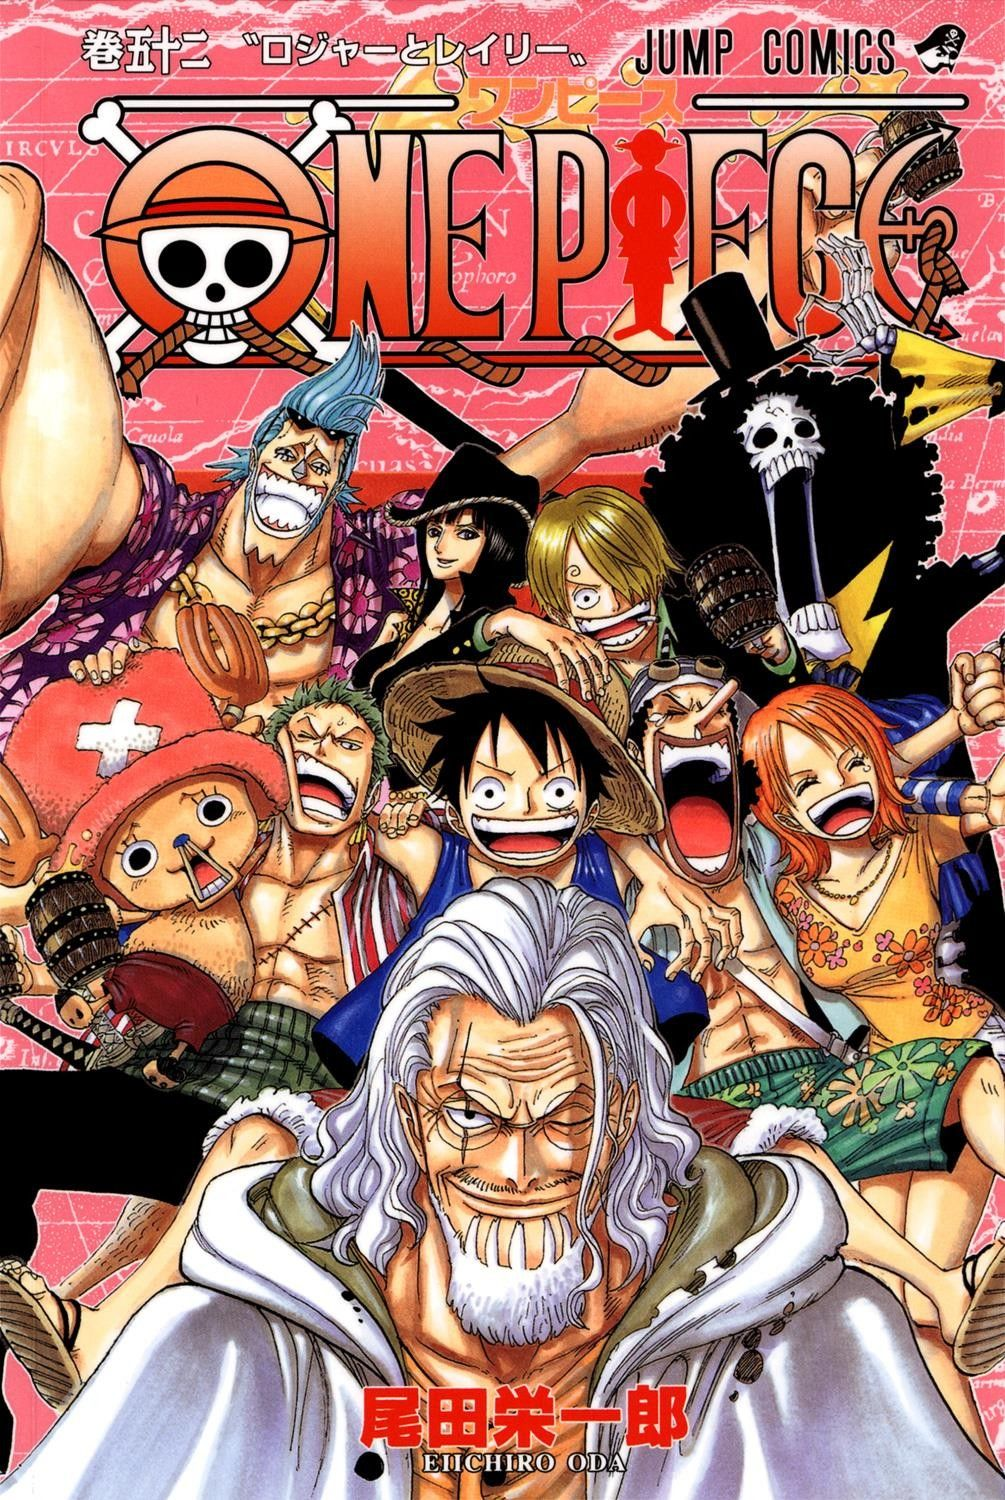 Pin by Parris.b on Wall prints in 2020   One piece anime ...